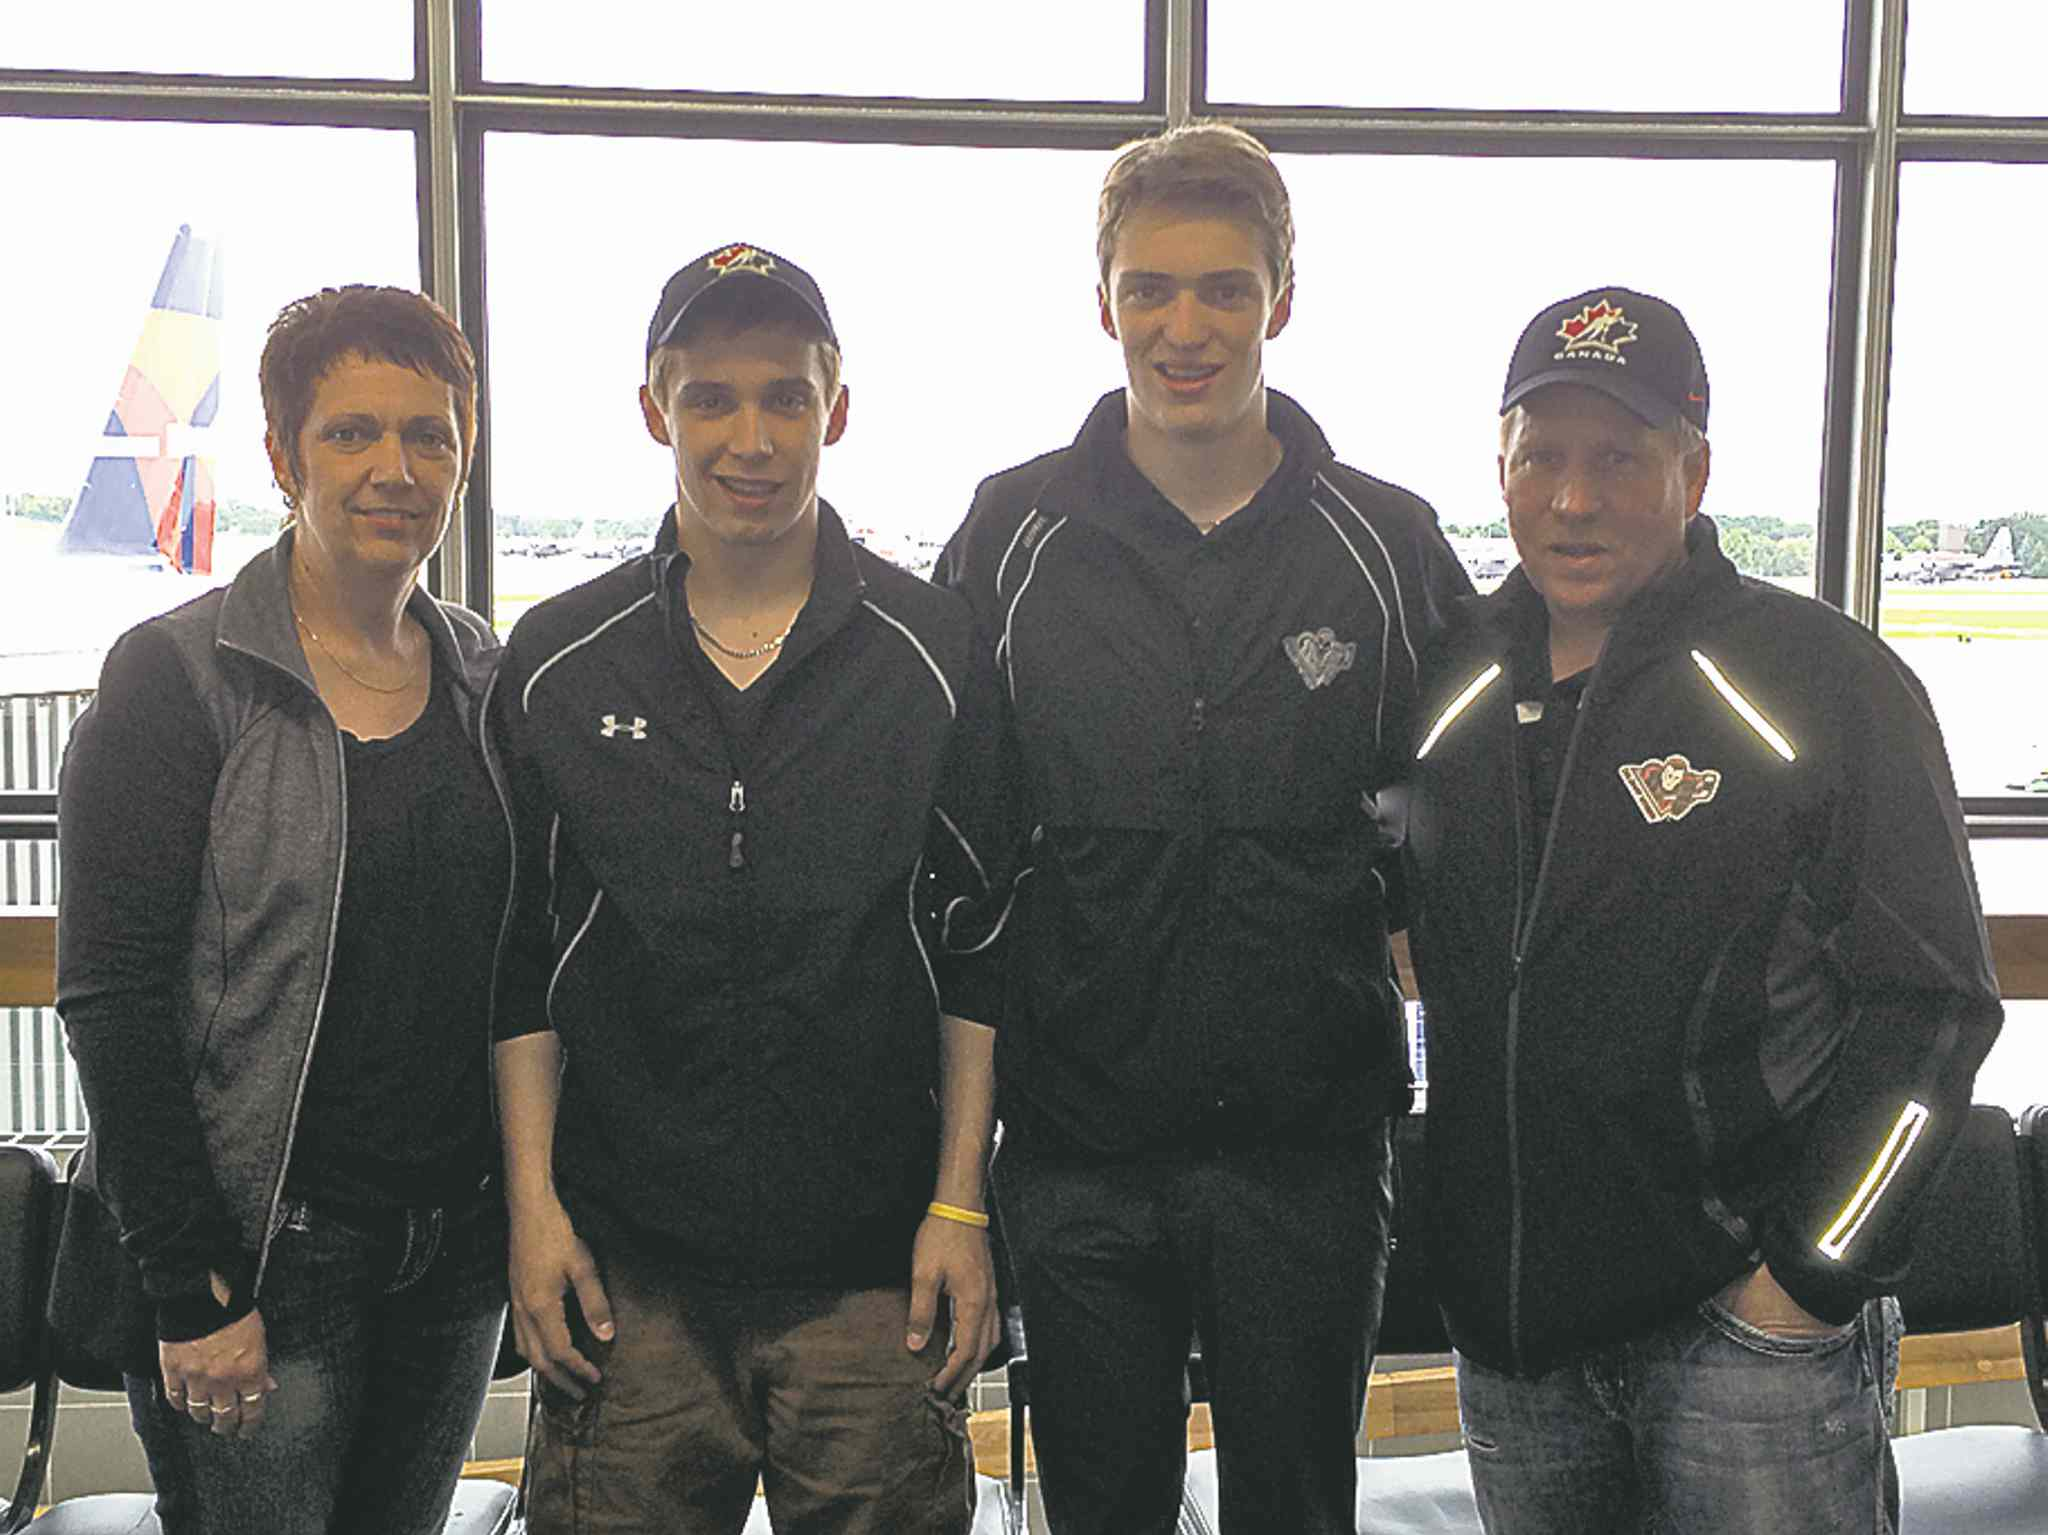 The Sanheim contingent arrived in Philadelphia Wednesday with mom Shelly (from left), twin brother Taylor, Travis and dad Kent on hand.